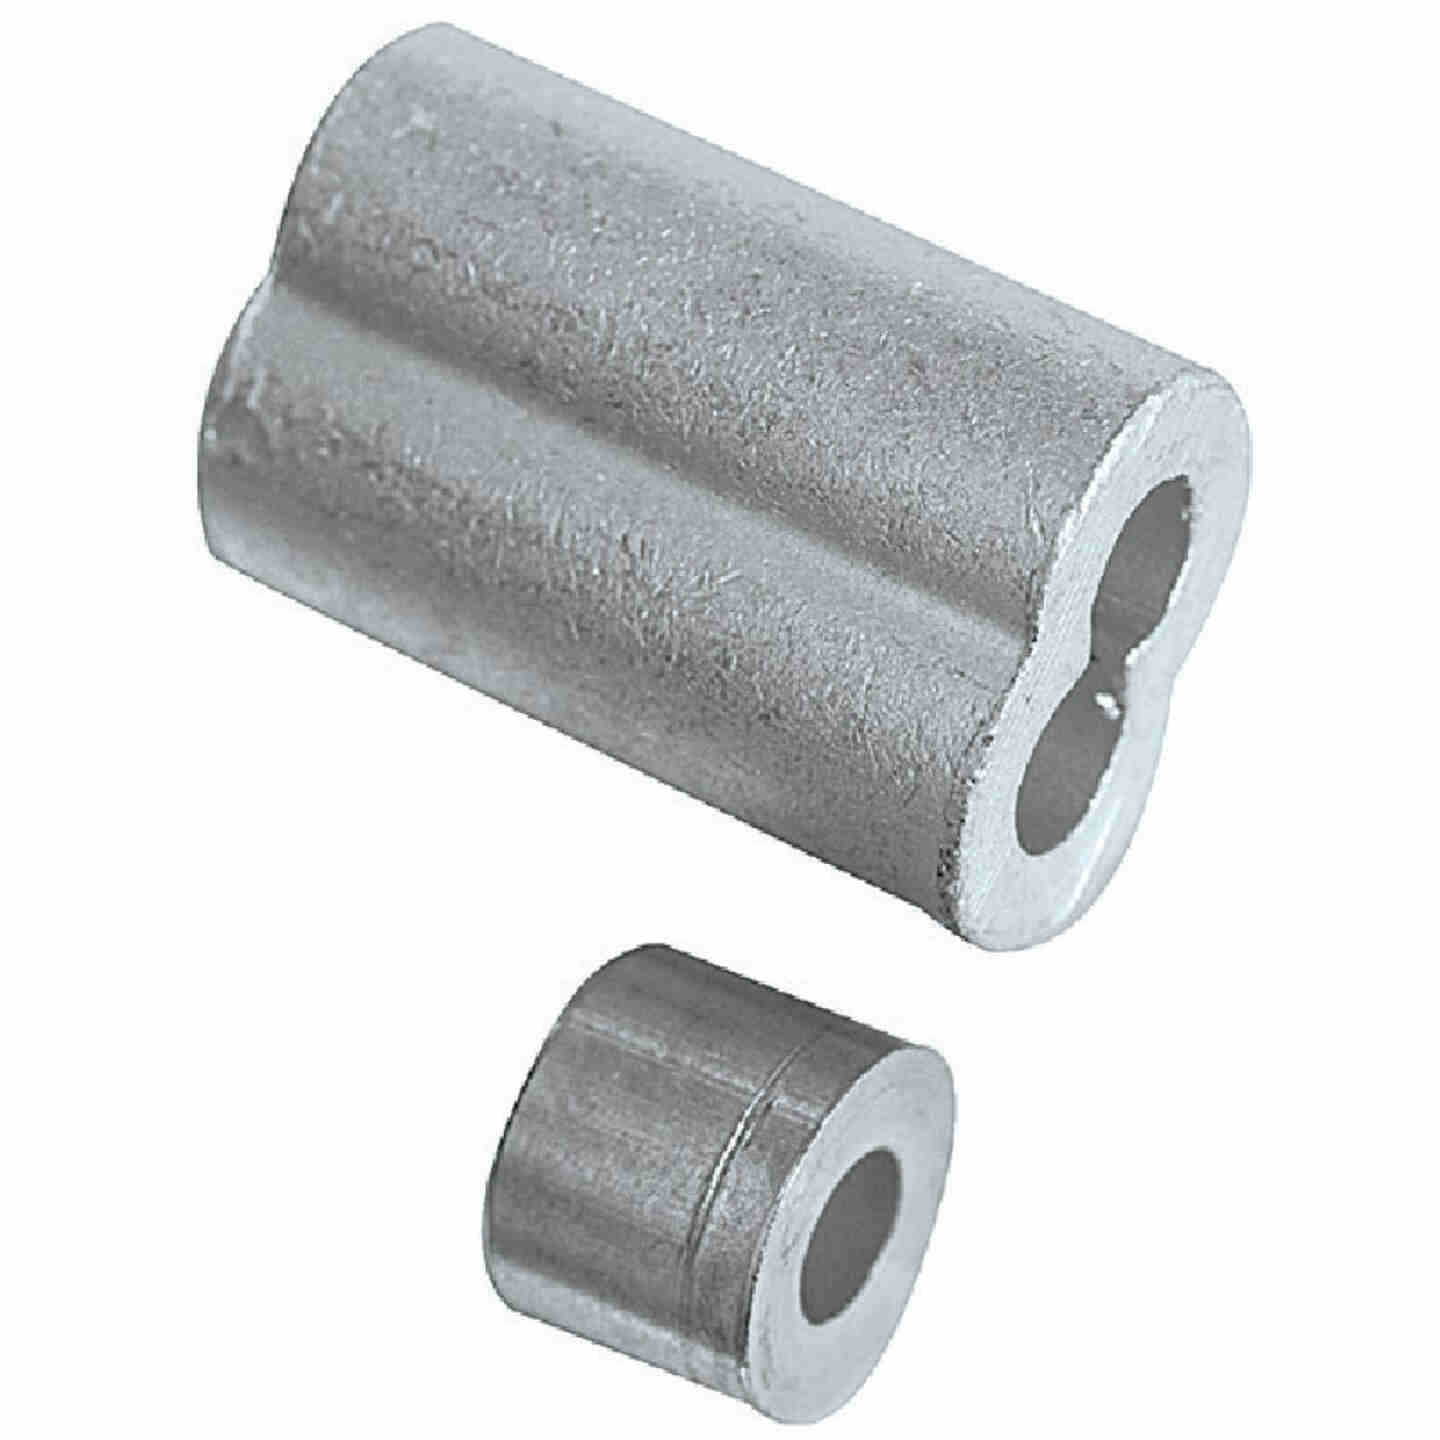 """Prime-Line Cable Ferrules and Stops, 3/16"""", Aluminum Image 2"""